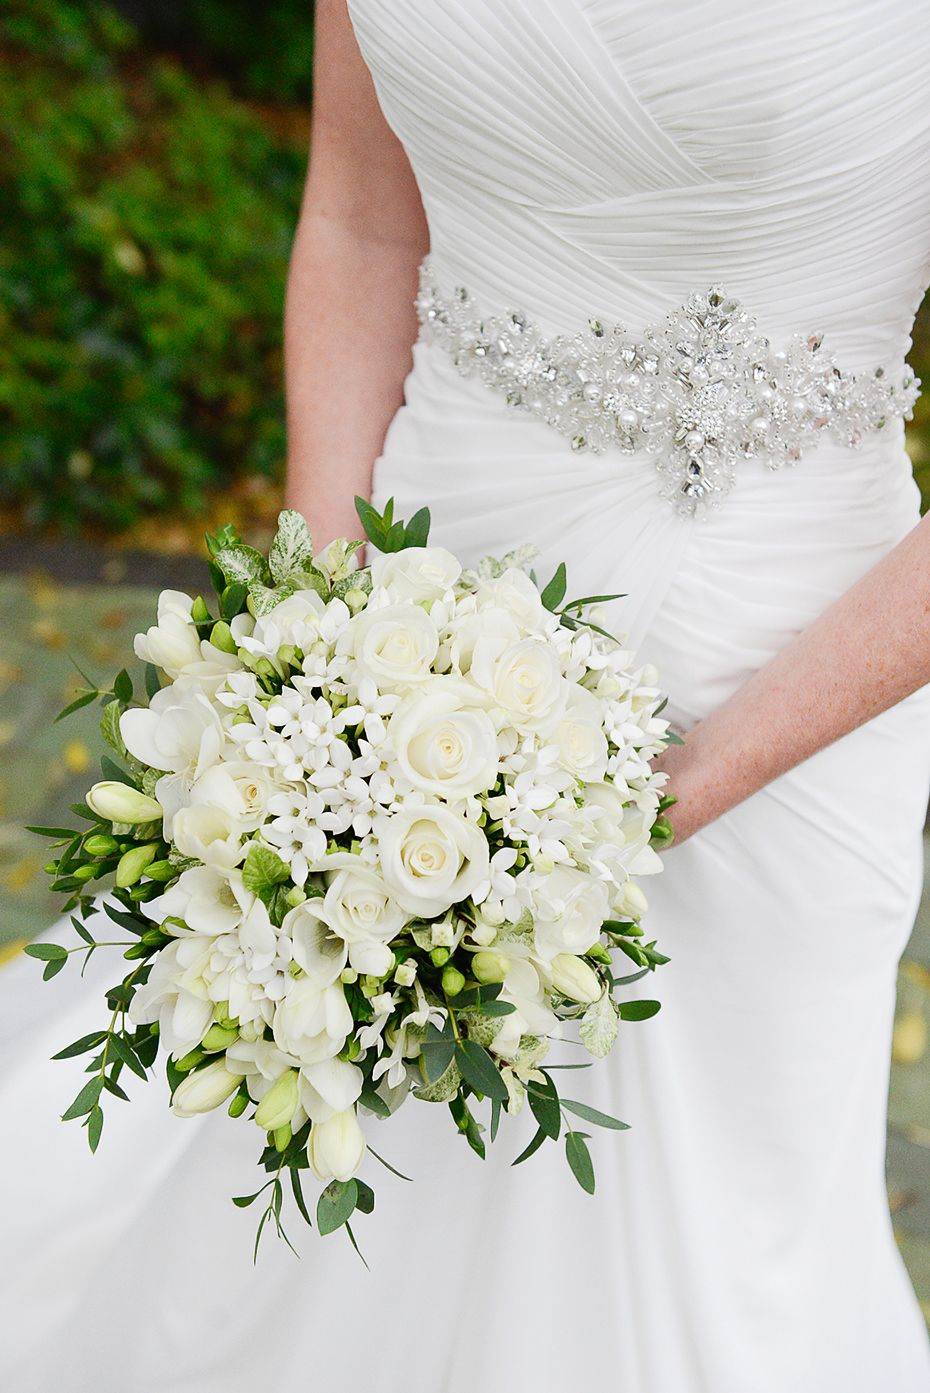 Jasmine and white rose bouquet ideas for wedding pinterest jasmine and white rose bouquet izmirmasajfo